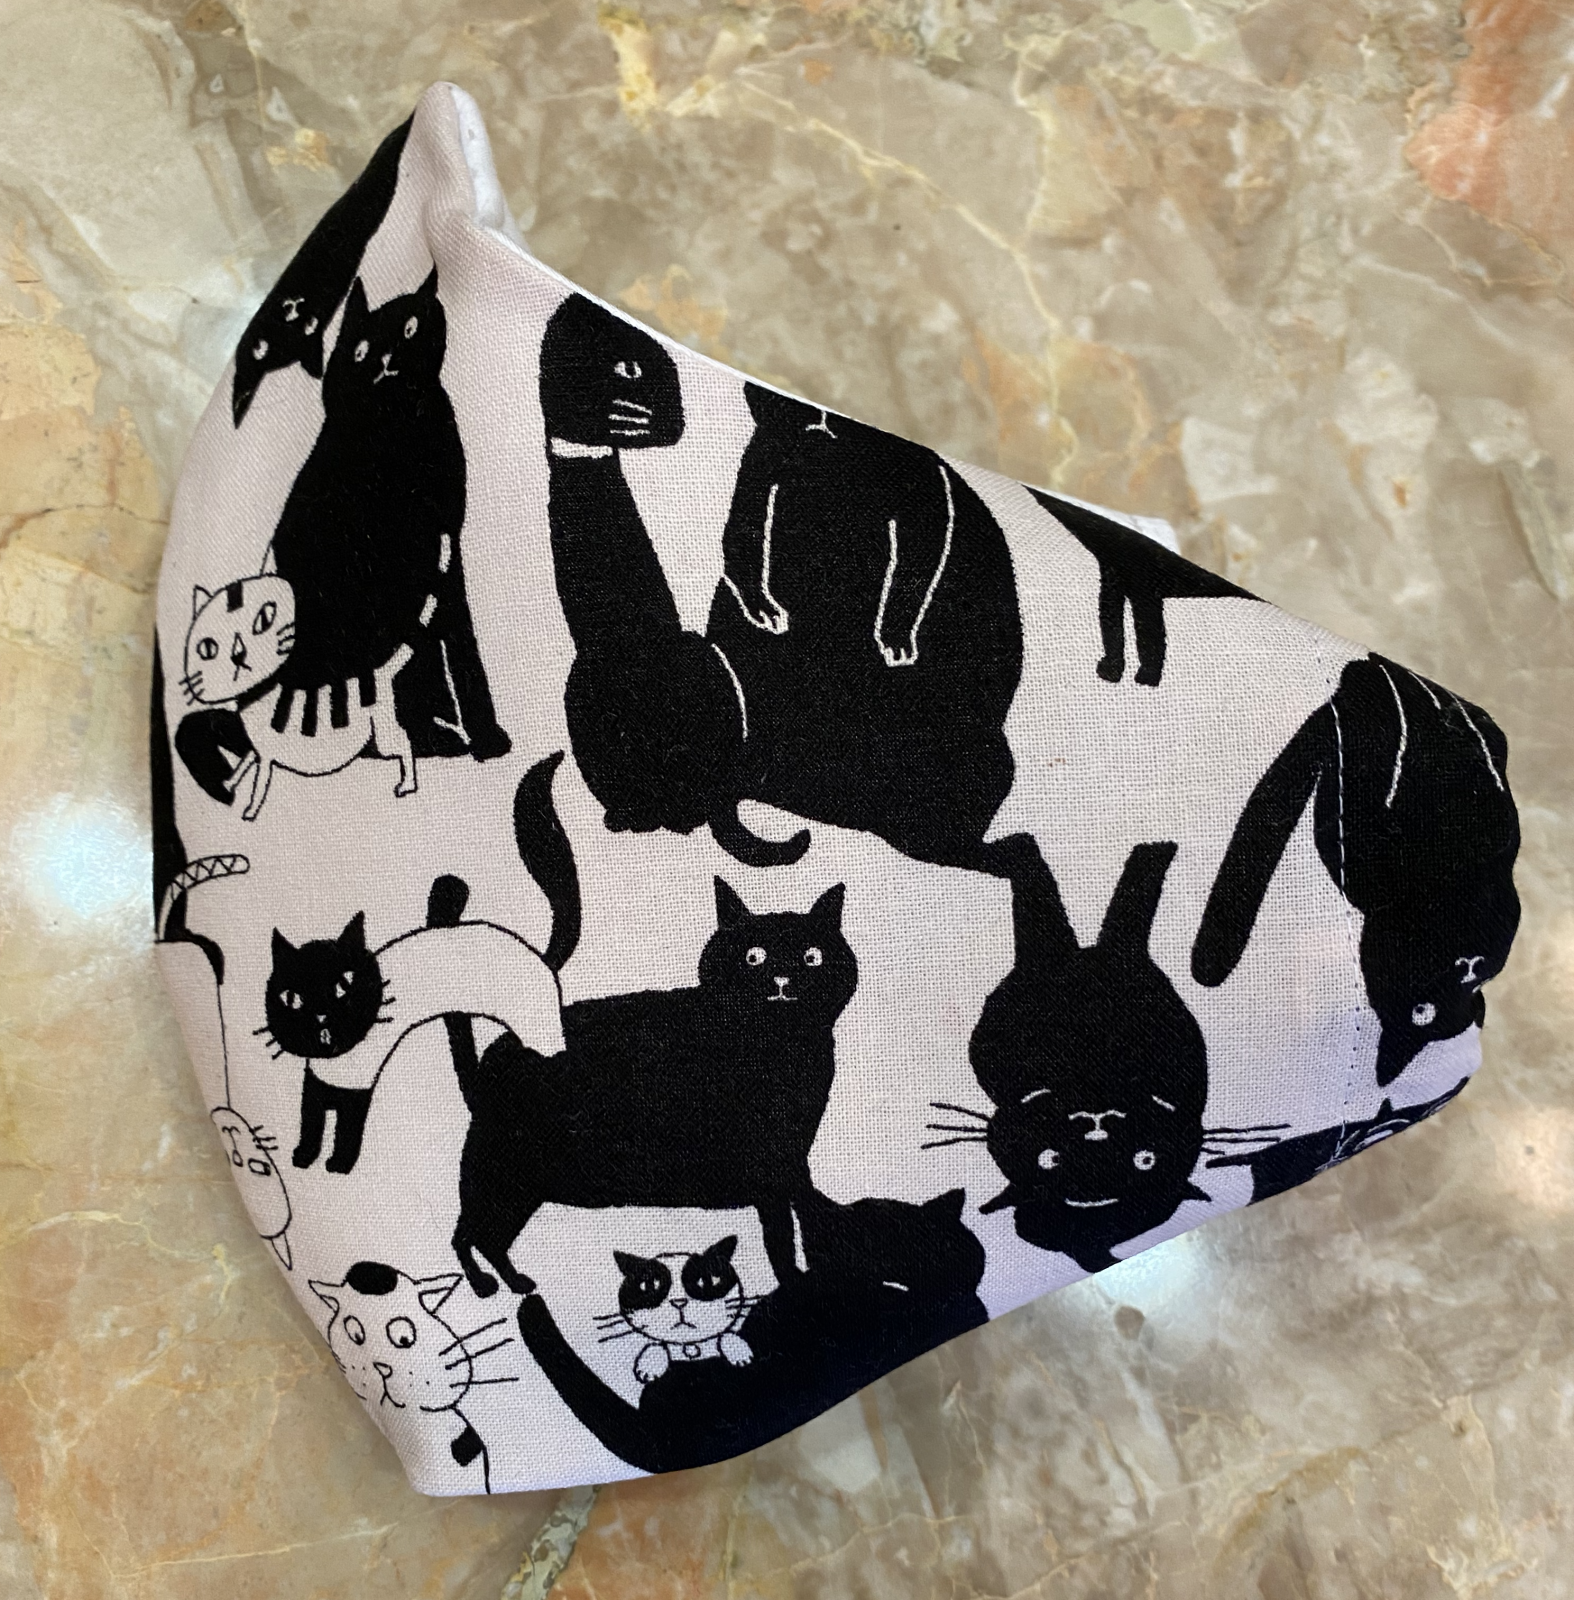 Mask Kit for 8 - Whiskers and Tails Cat Fabric